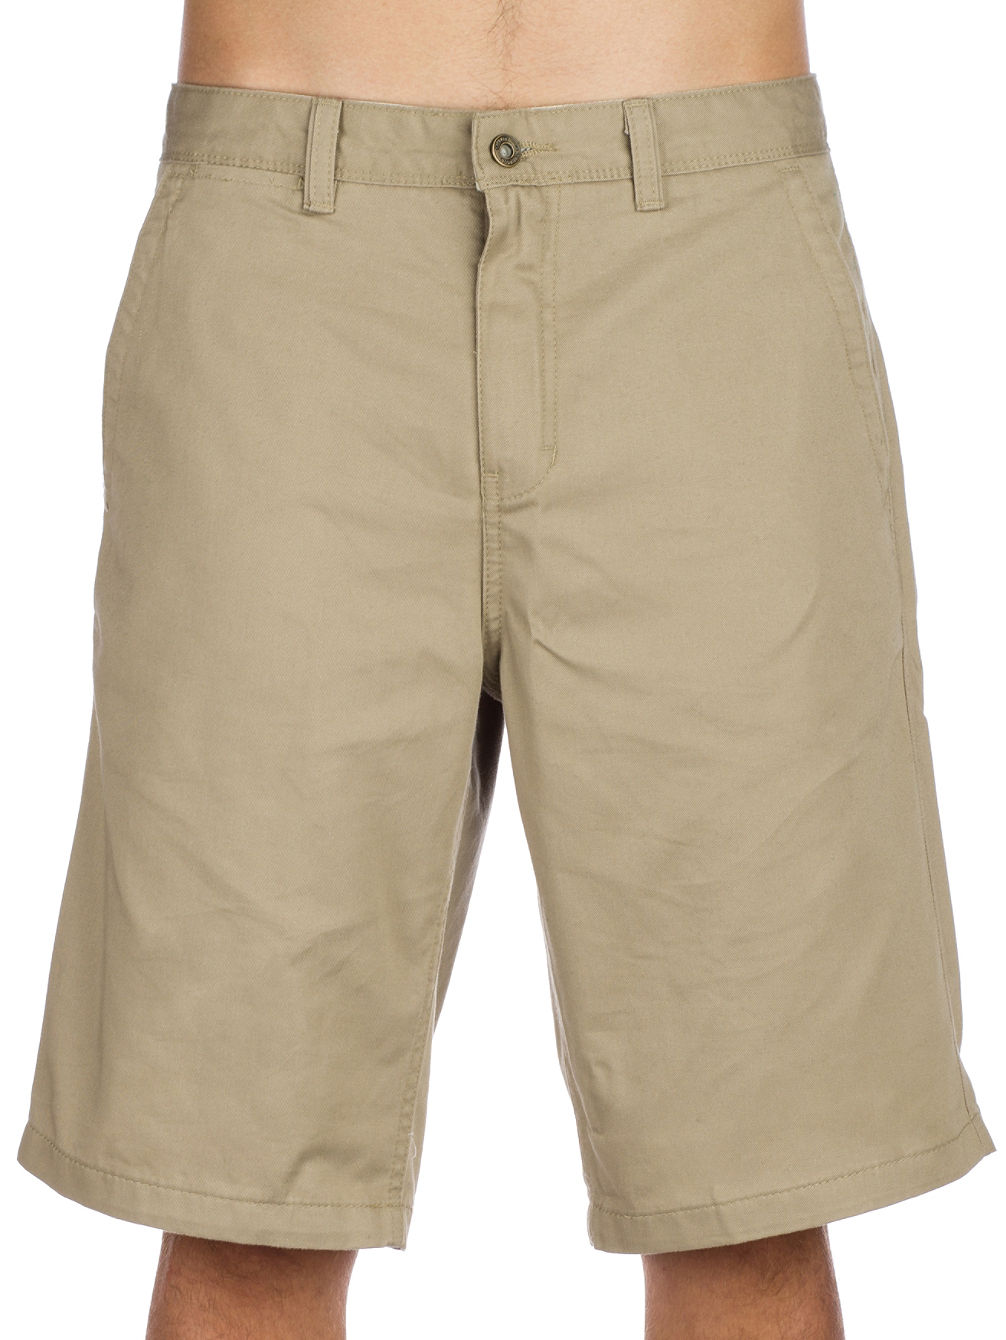 Discord Chino Walk Shorts